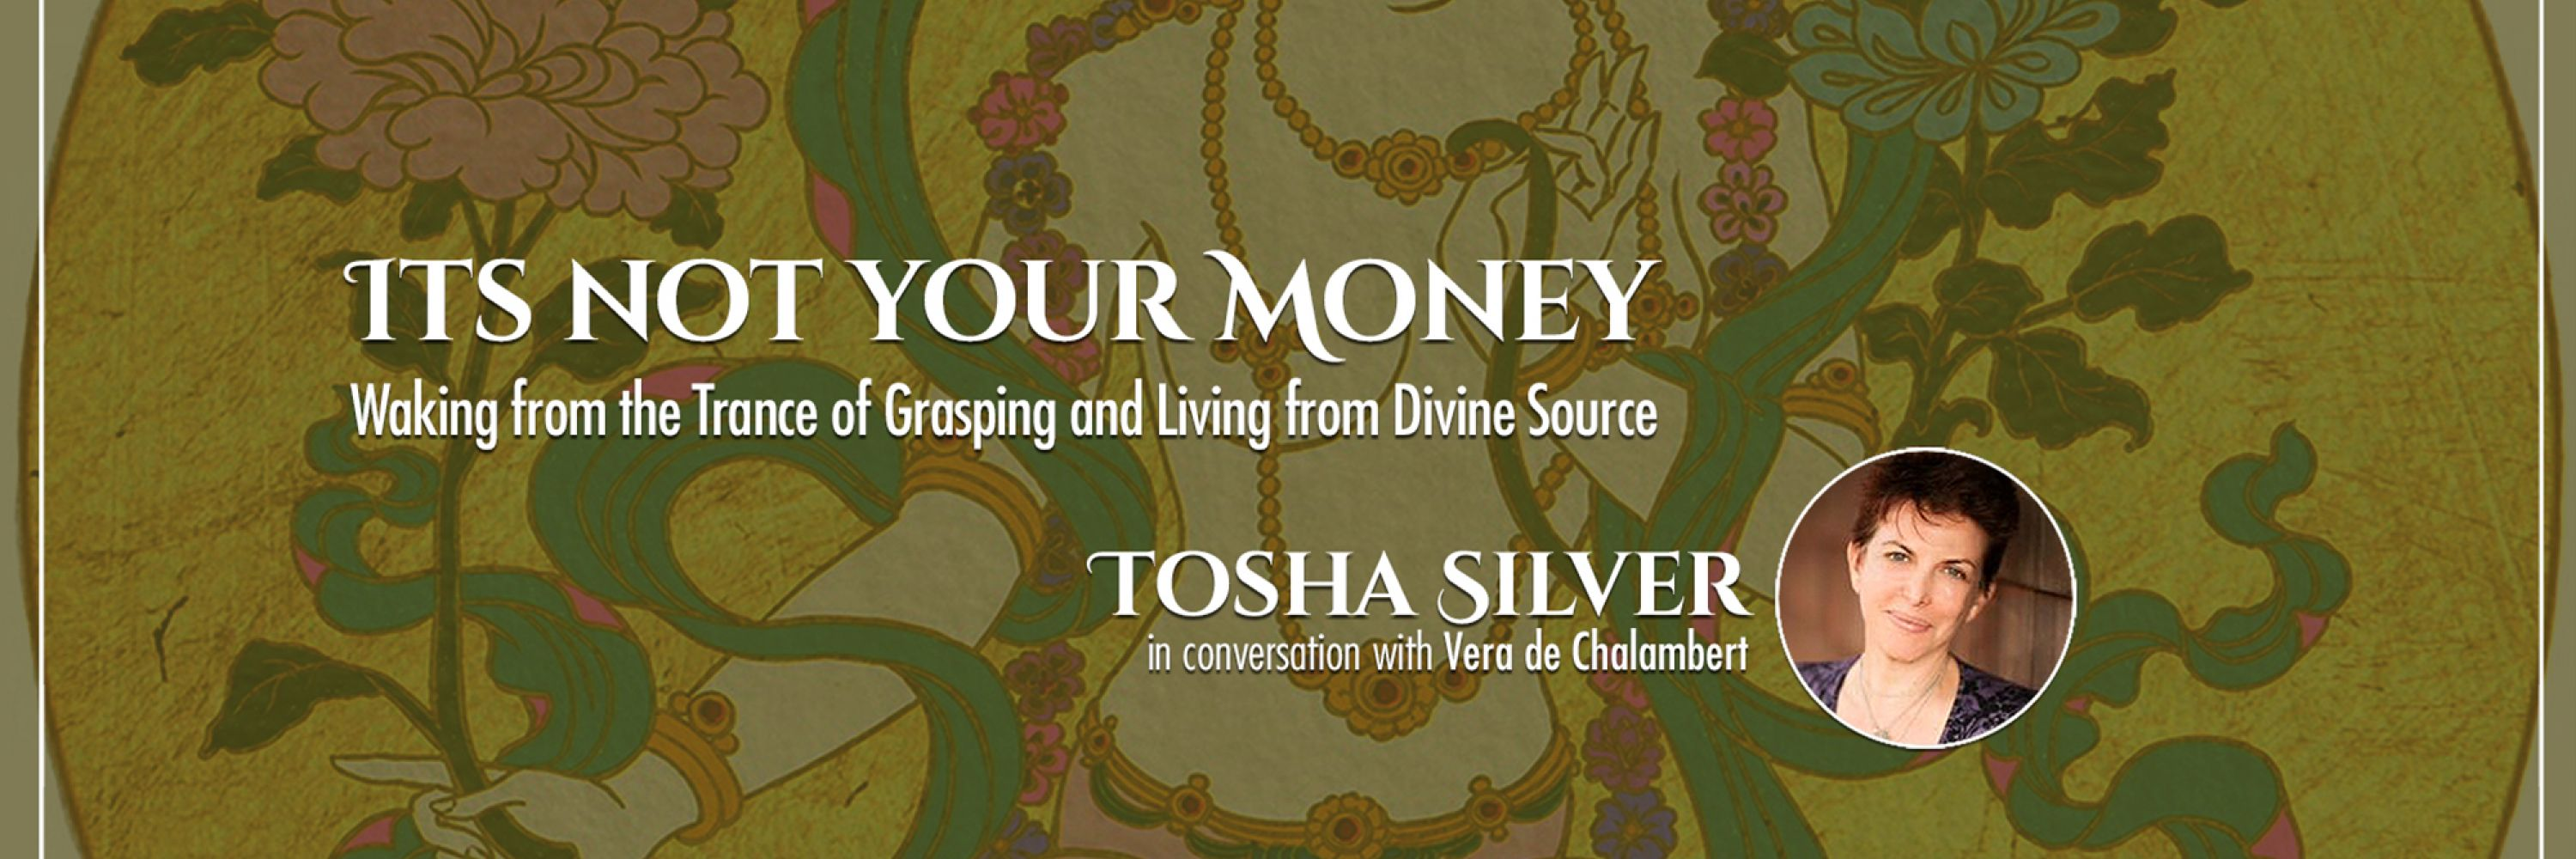 It's Not Your Money: Living from Divine Source and Waking from the Trance of Grasping